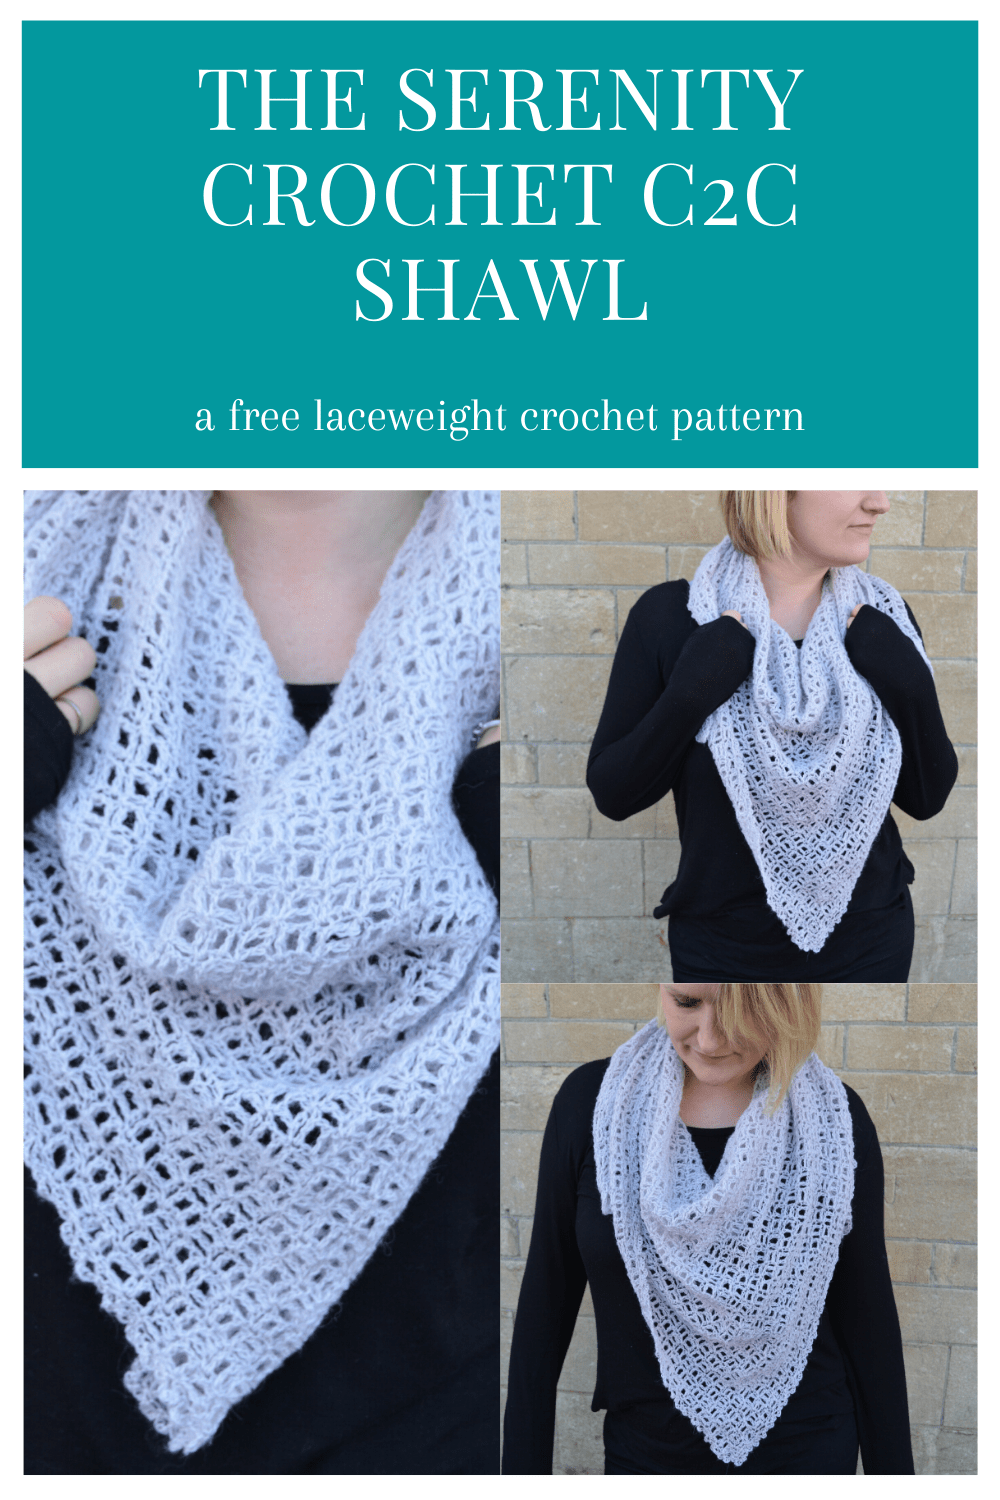 Learn to crochet this lightweight c2c (corner to corner) crochet shawl with this free crochet pattern. The chain spaces in this triangular scarf create a beautiful crochet lace style that is perfect for beginners to achieve. Style it as a traditional shawl or wear as a more modern neck bandana, the choice is yours.